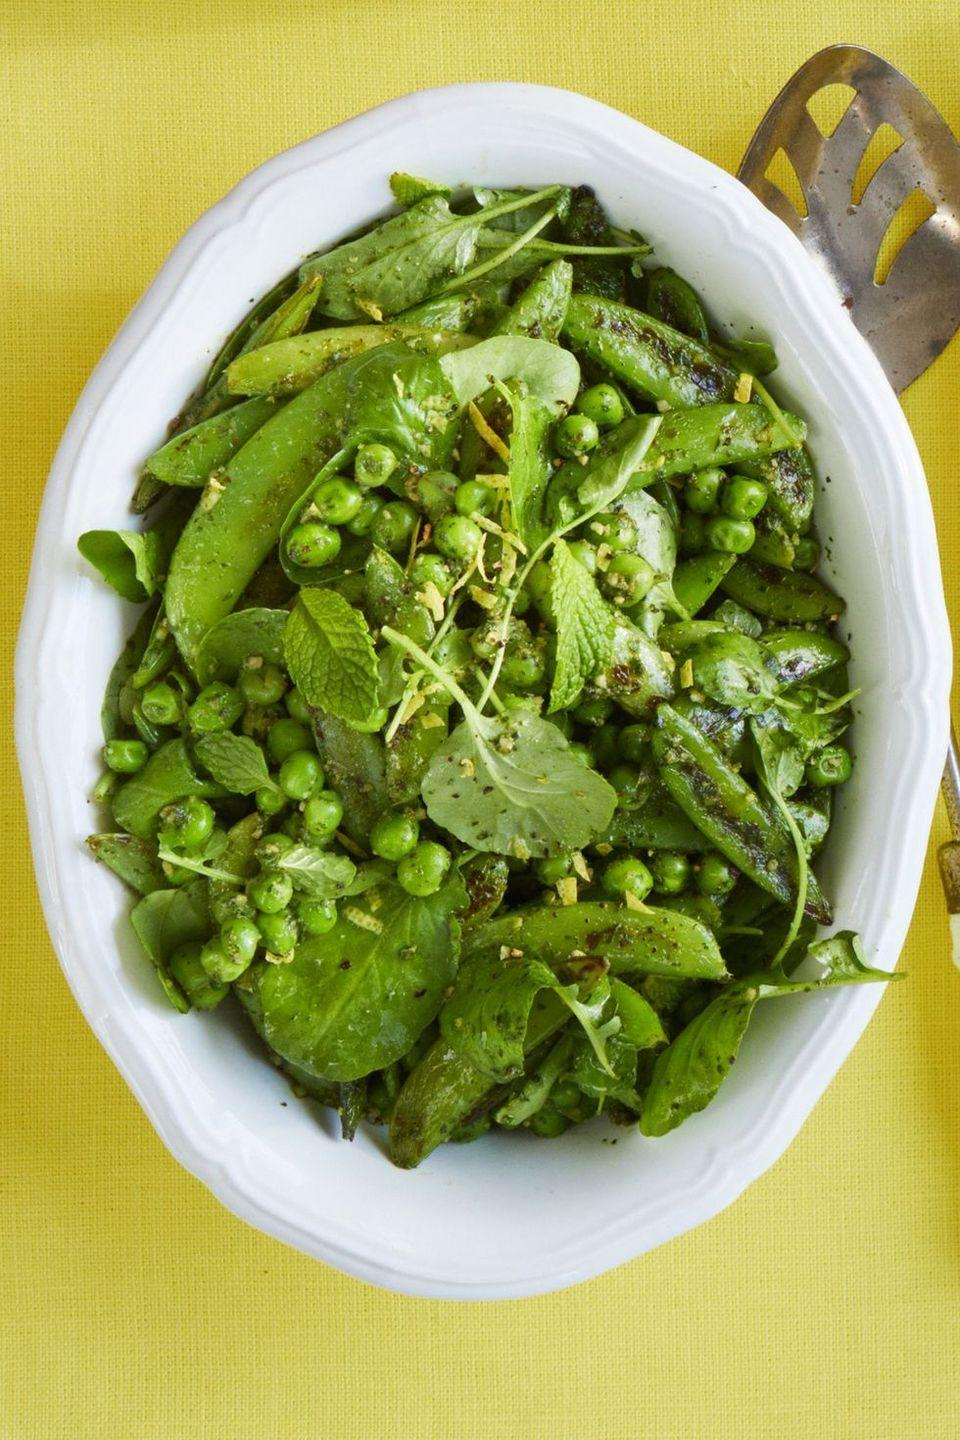 """<p>The secret to this flavor-packed recipe? A searing-hot cast iron skillet.</p><p><em><a href=""""https://www.womansday.com/food-recipes/food-drinks/a19122134/blistered-pea-salad-with-mint-pesto-recipe/"""" rel=""""nofollow noopener"""" target=""""_blank"""" data-ylk=""""slk:Get the recipe from Woman's Day »"""" class=""""link rapid-noclick-resp"""">Get the recipe from Woman's Day »</a></em></p>"""